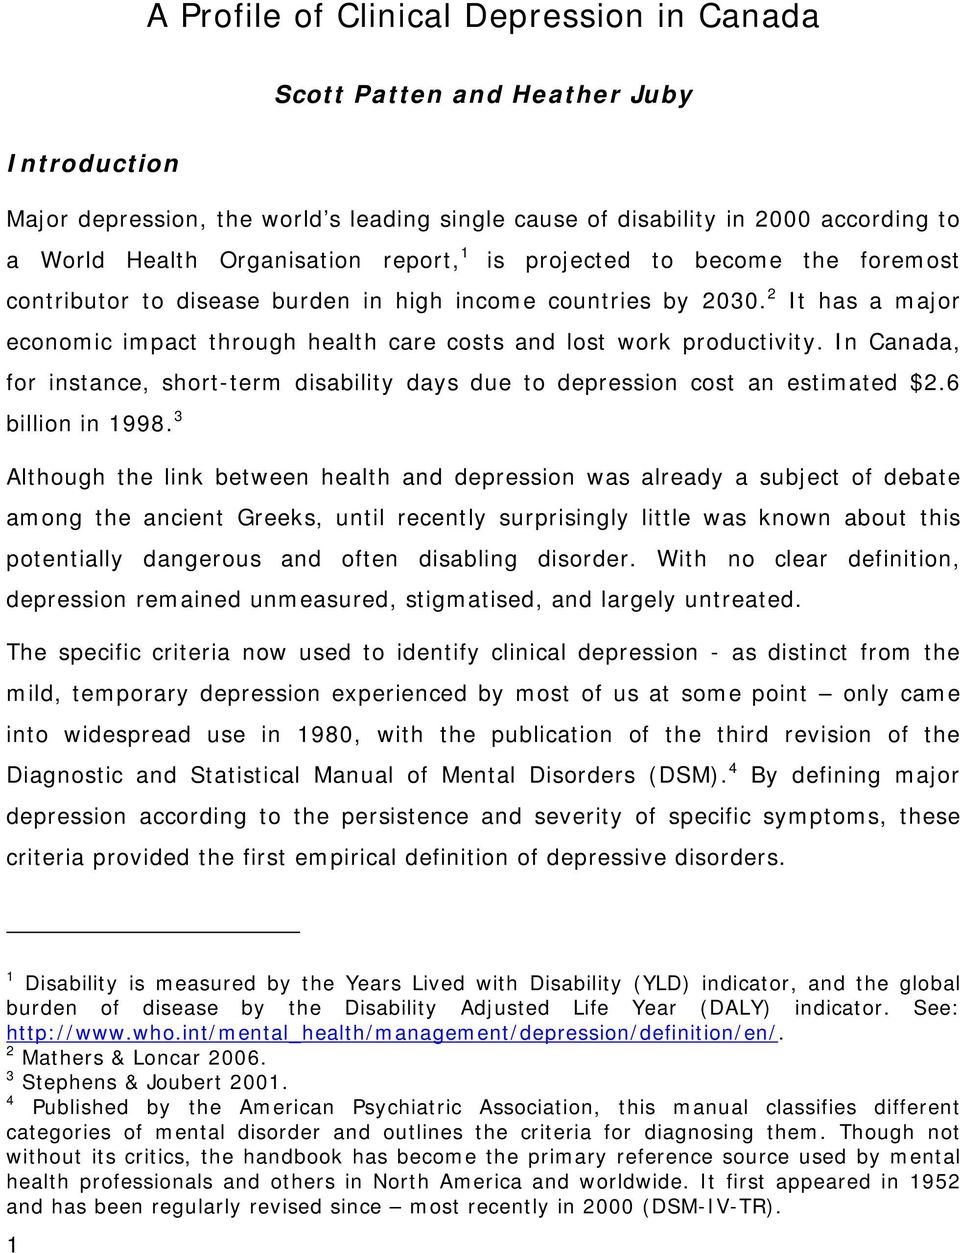 In Canada, for instance, short-term disability days due to depression cost an estimated $2.6 billion in 1998.